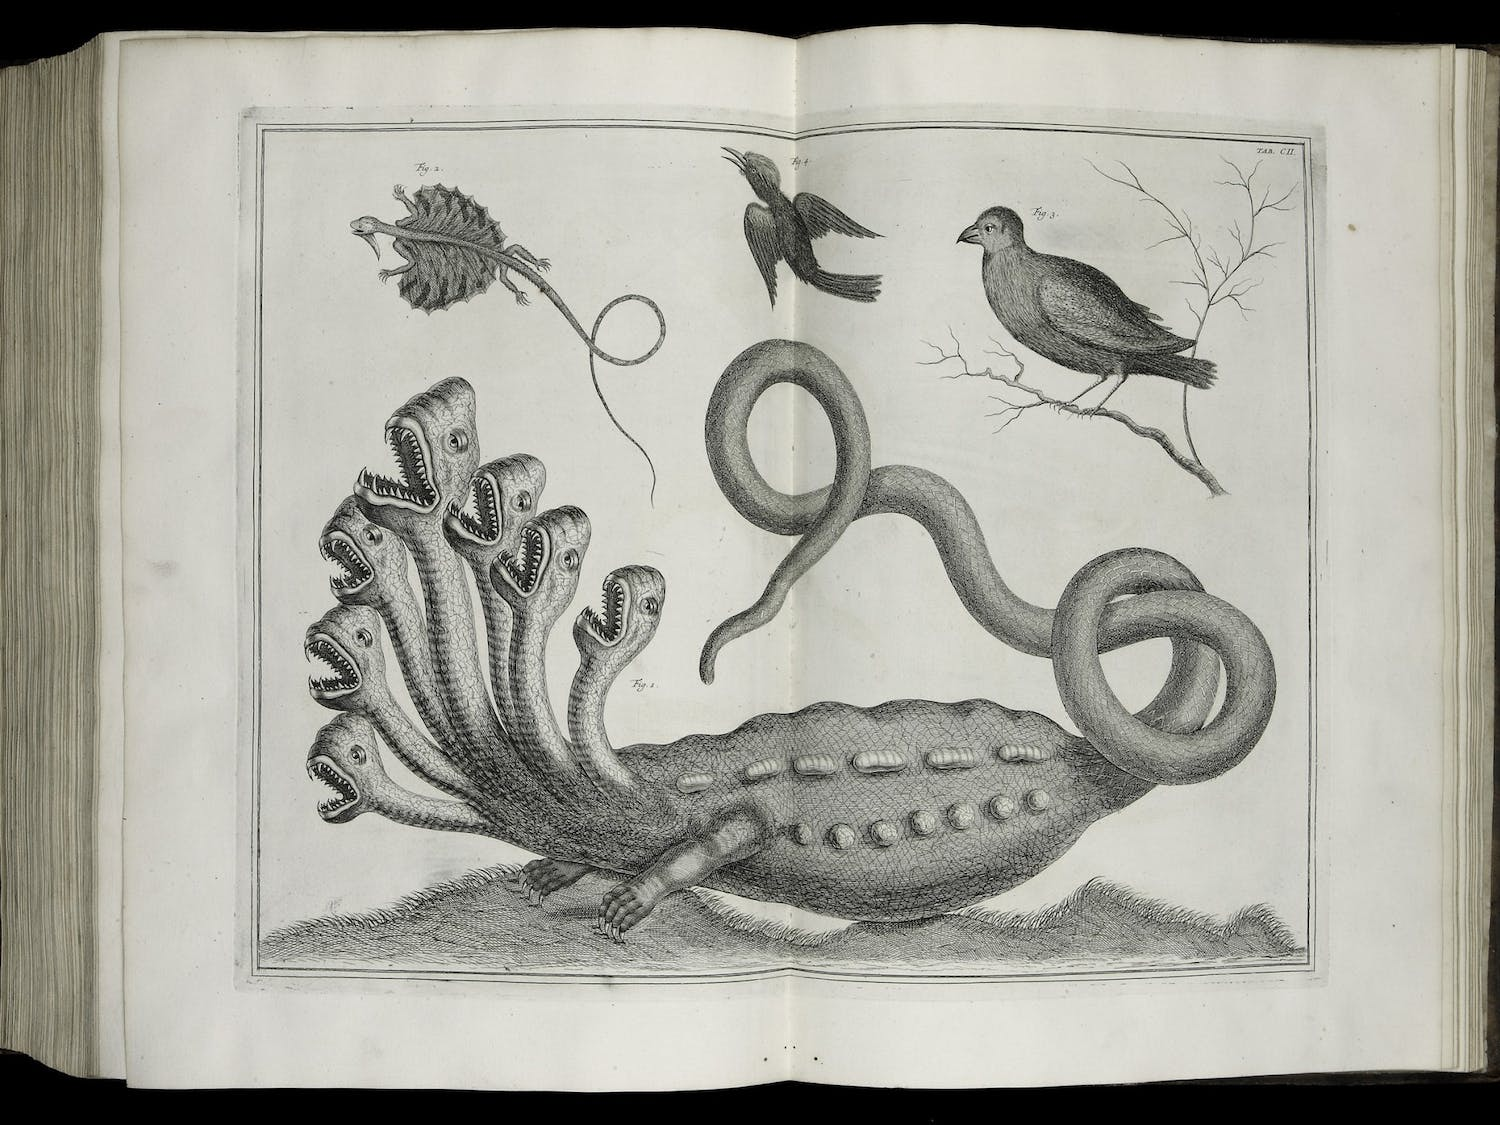 A page from one of the rare books donated by Florence Fearrington: Albertus Seba, Locupletissimi rerum naturalium thesauri accurata descriptio (Amsterdam: Wetsten, Smith and Jannson-Waesberg, 1734). From the Florence Fearrington Collection. Photo courtesy UNC-Chapel Hill University Libraries.